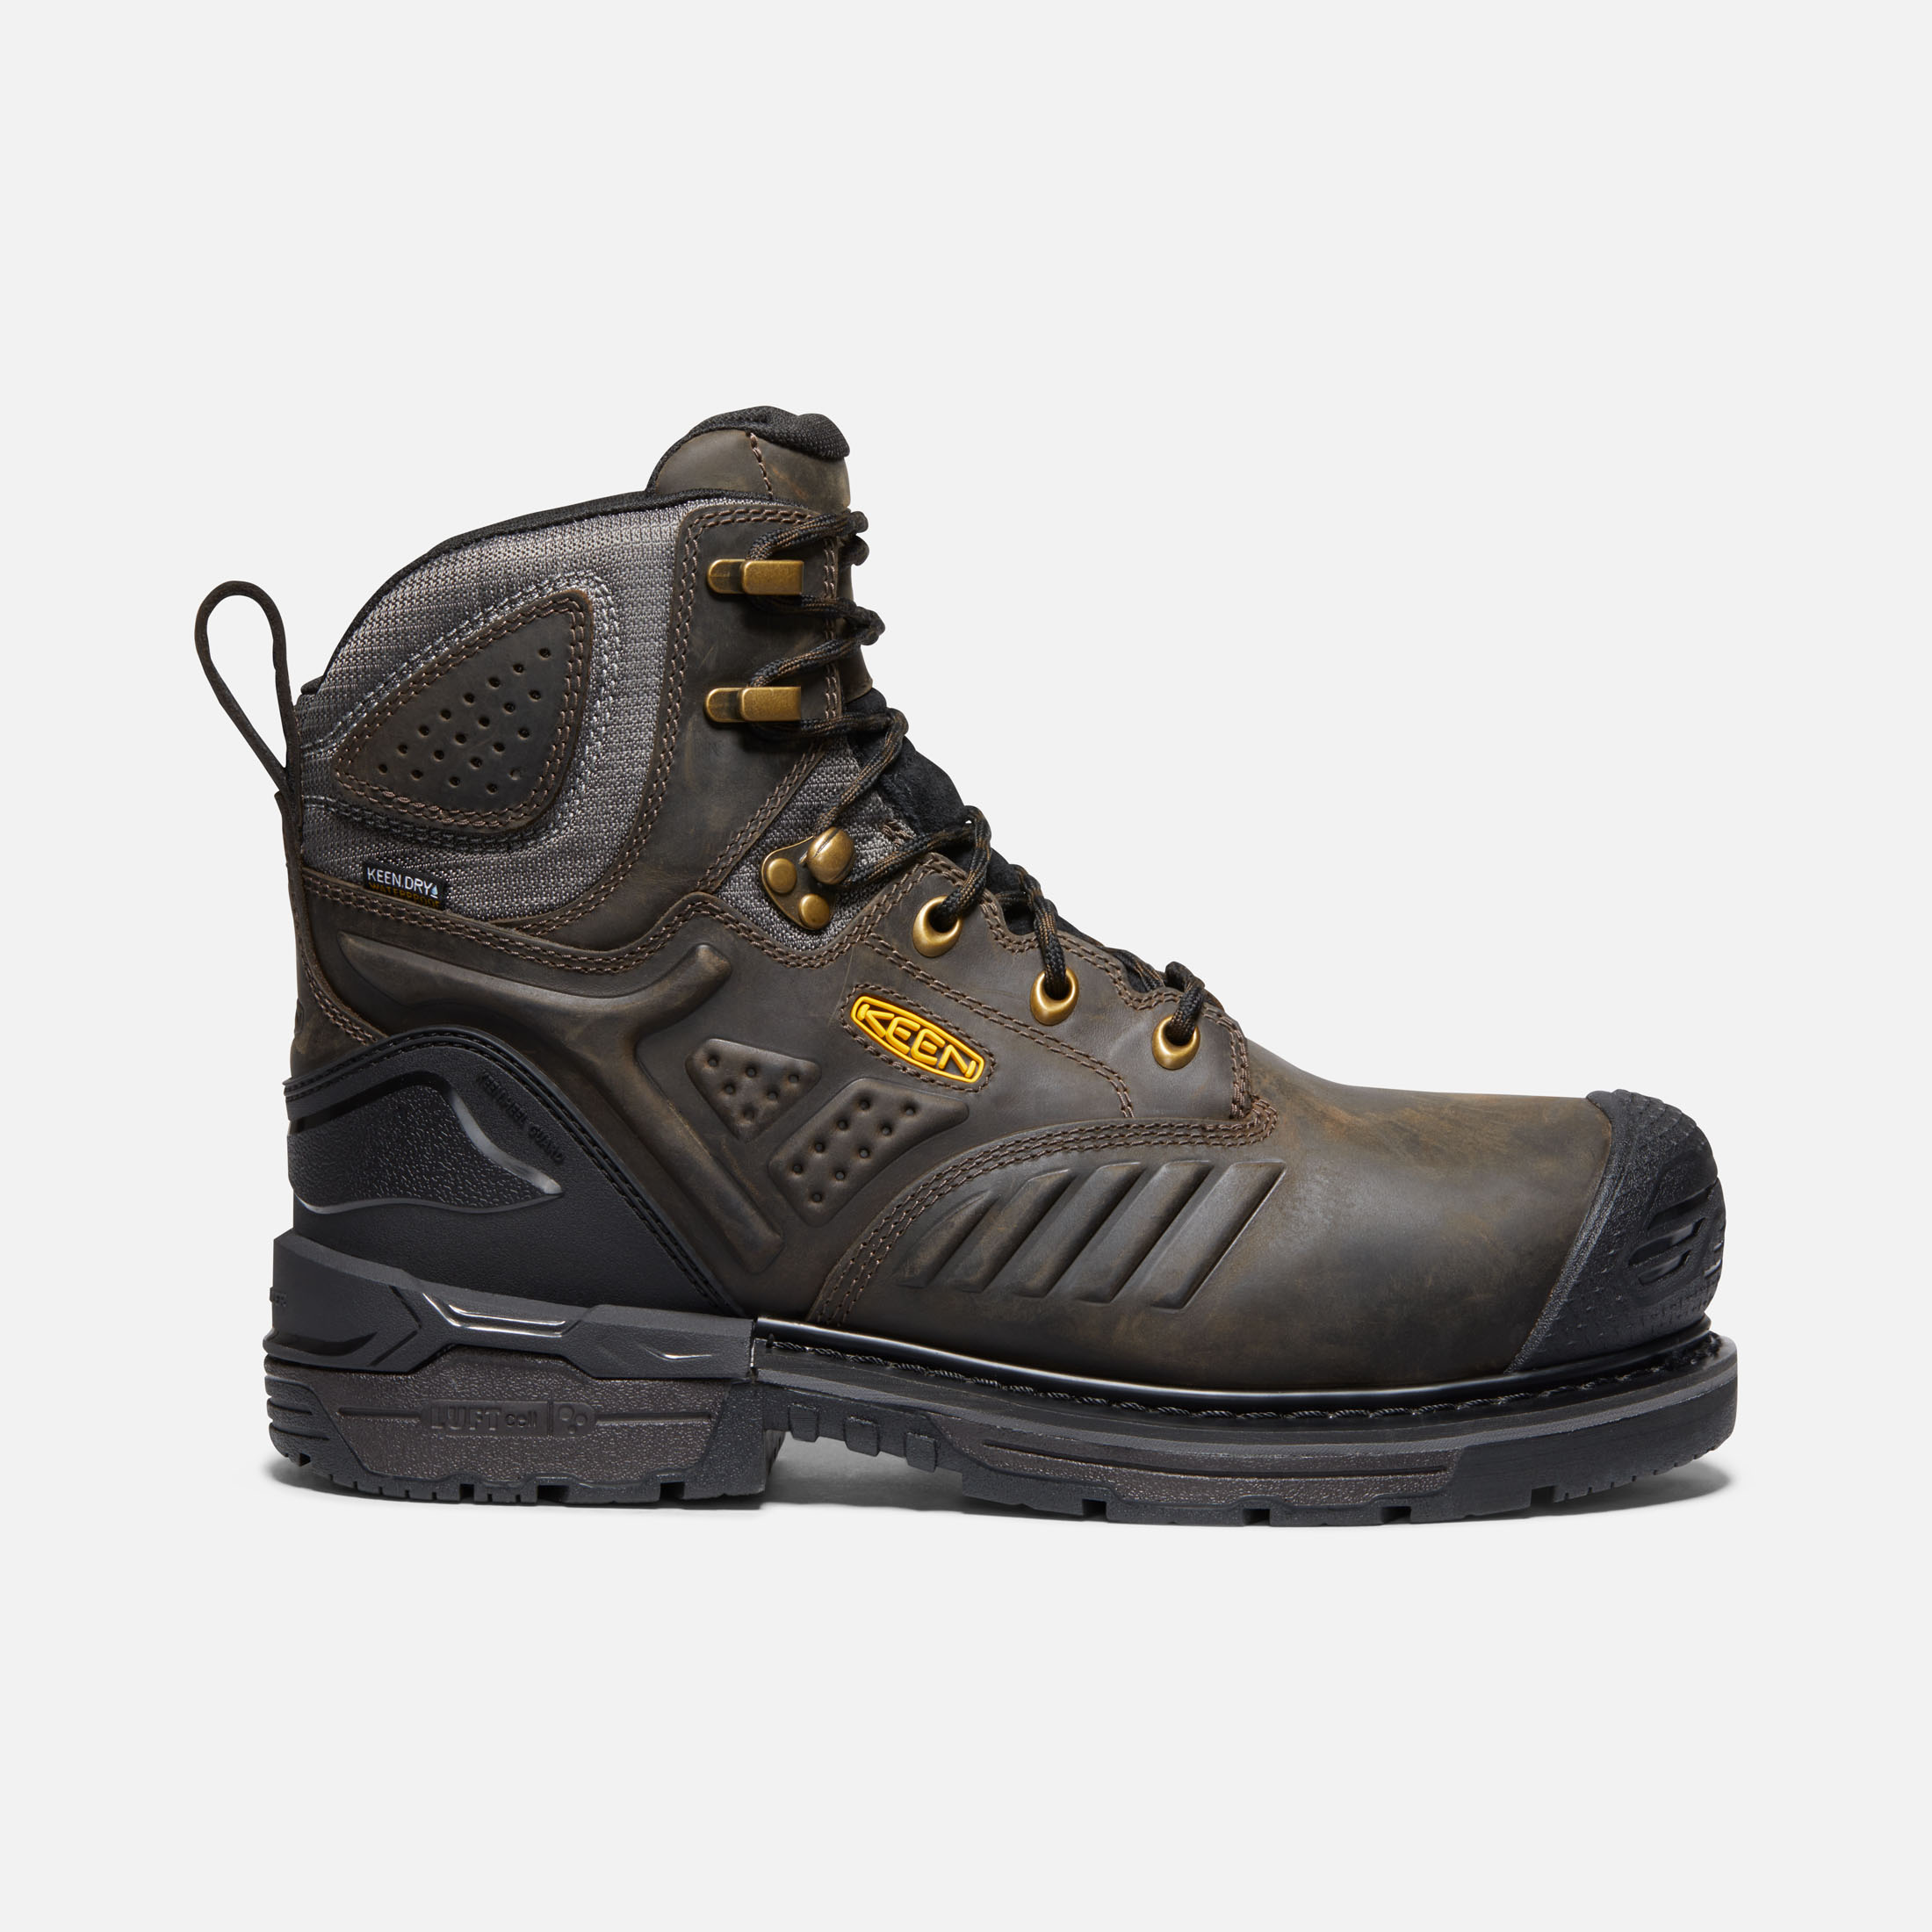 Mens Ankle Boots Safety Leather Lace Up Heavy Duty Dealer Work Shoes Size